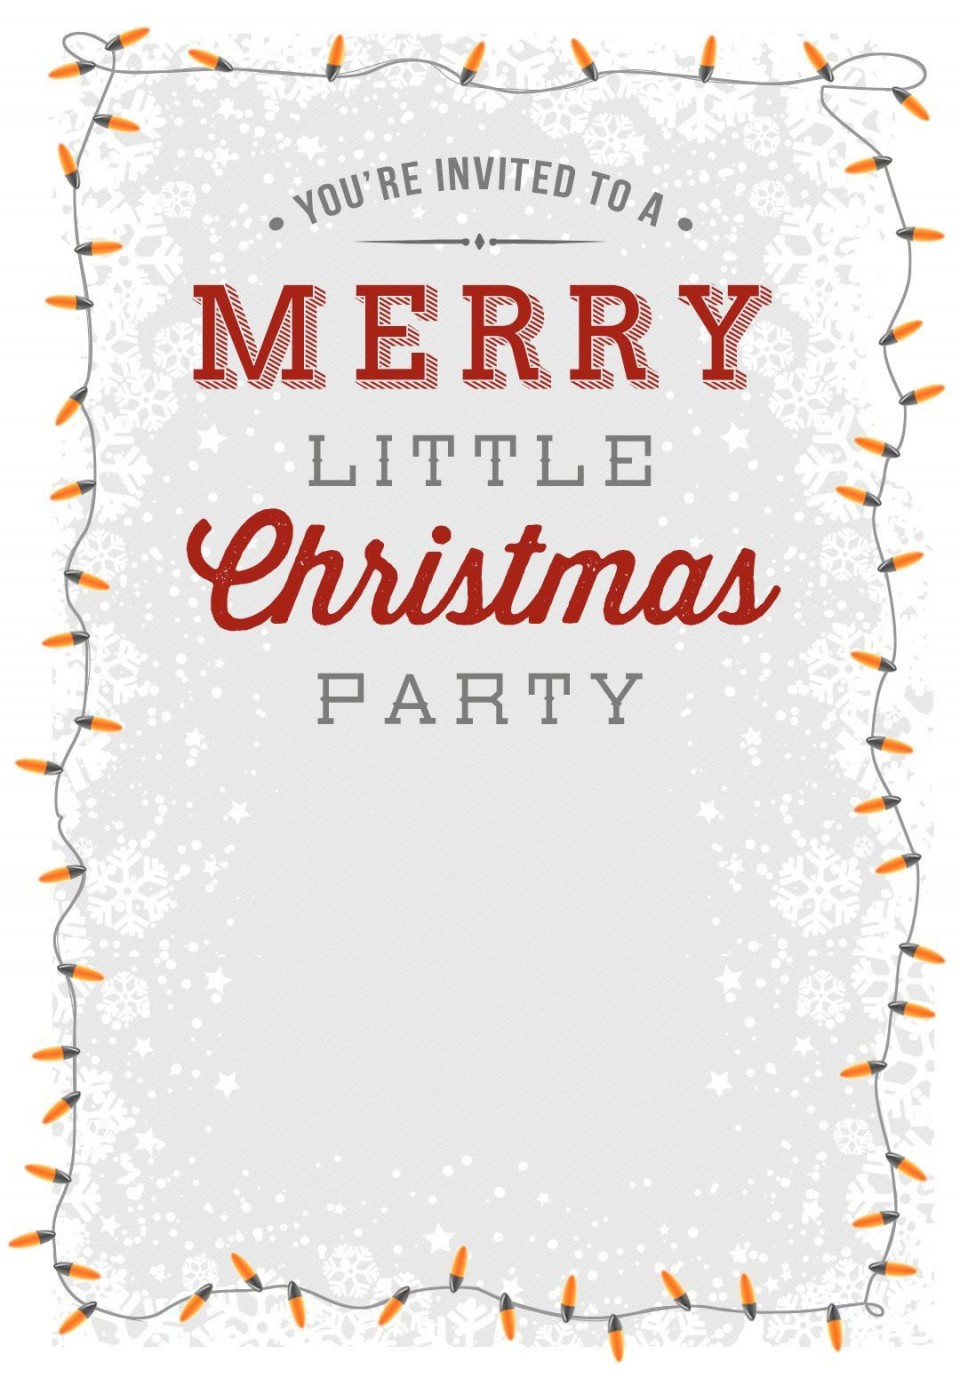 006 Fascinating Christma Party Invitation Template Idea  Funny Free Download Word Card960